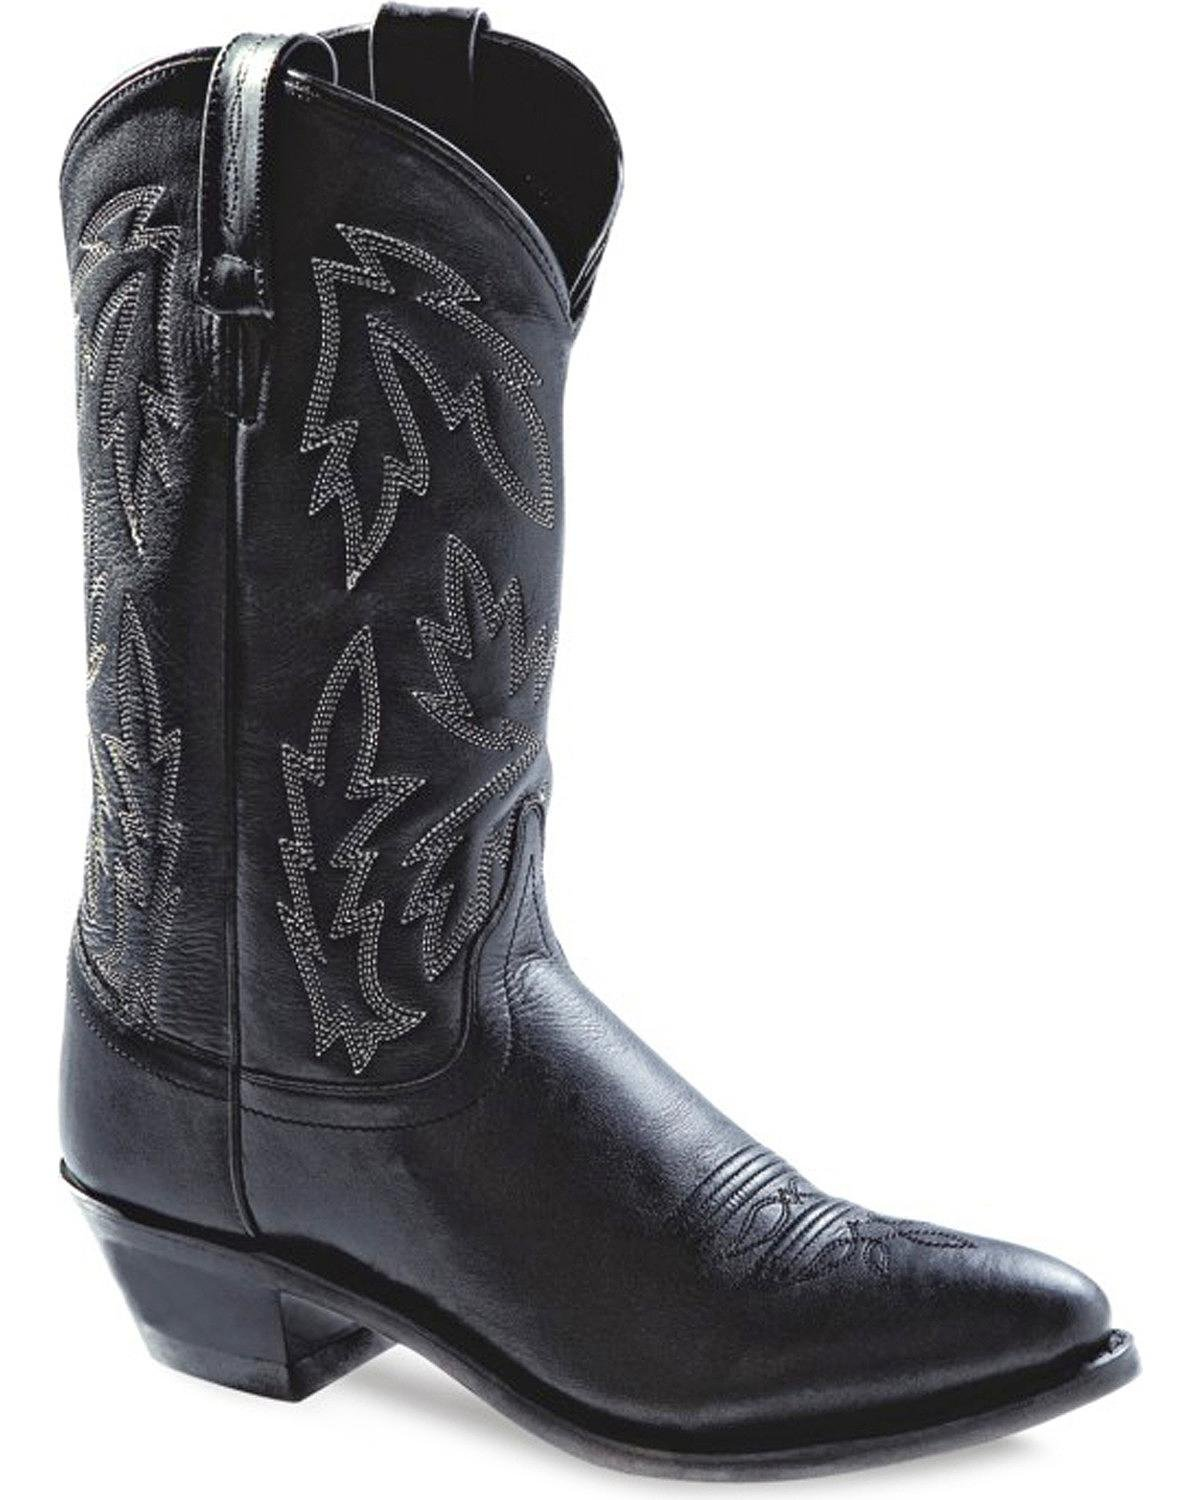 Old West Women's Polanil Western Cowboy Boot Round Toe - Ow2034l B002AJ9R7Q 9 M US|Black